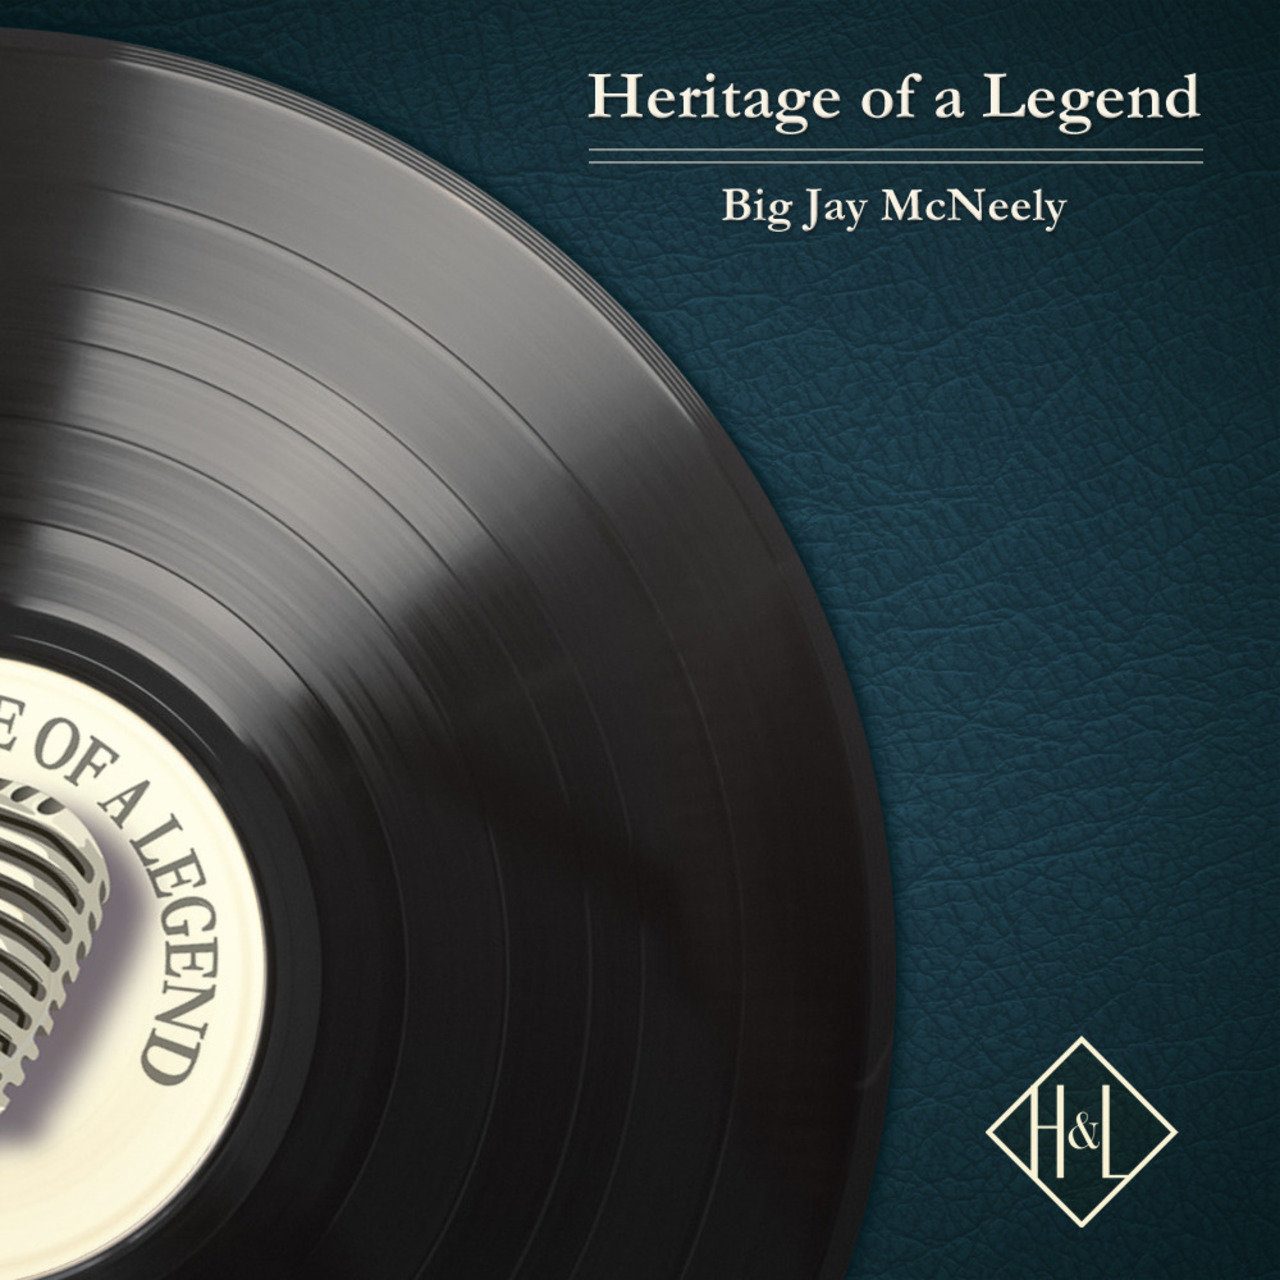 H&L: Heritage of a Legend, Big Jay McNeely